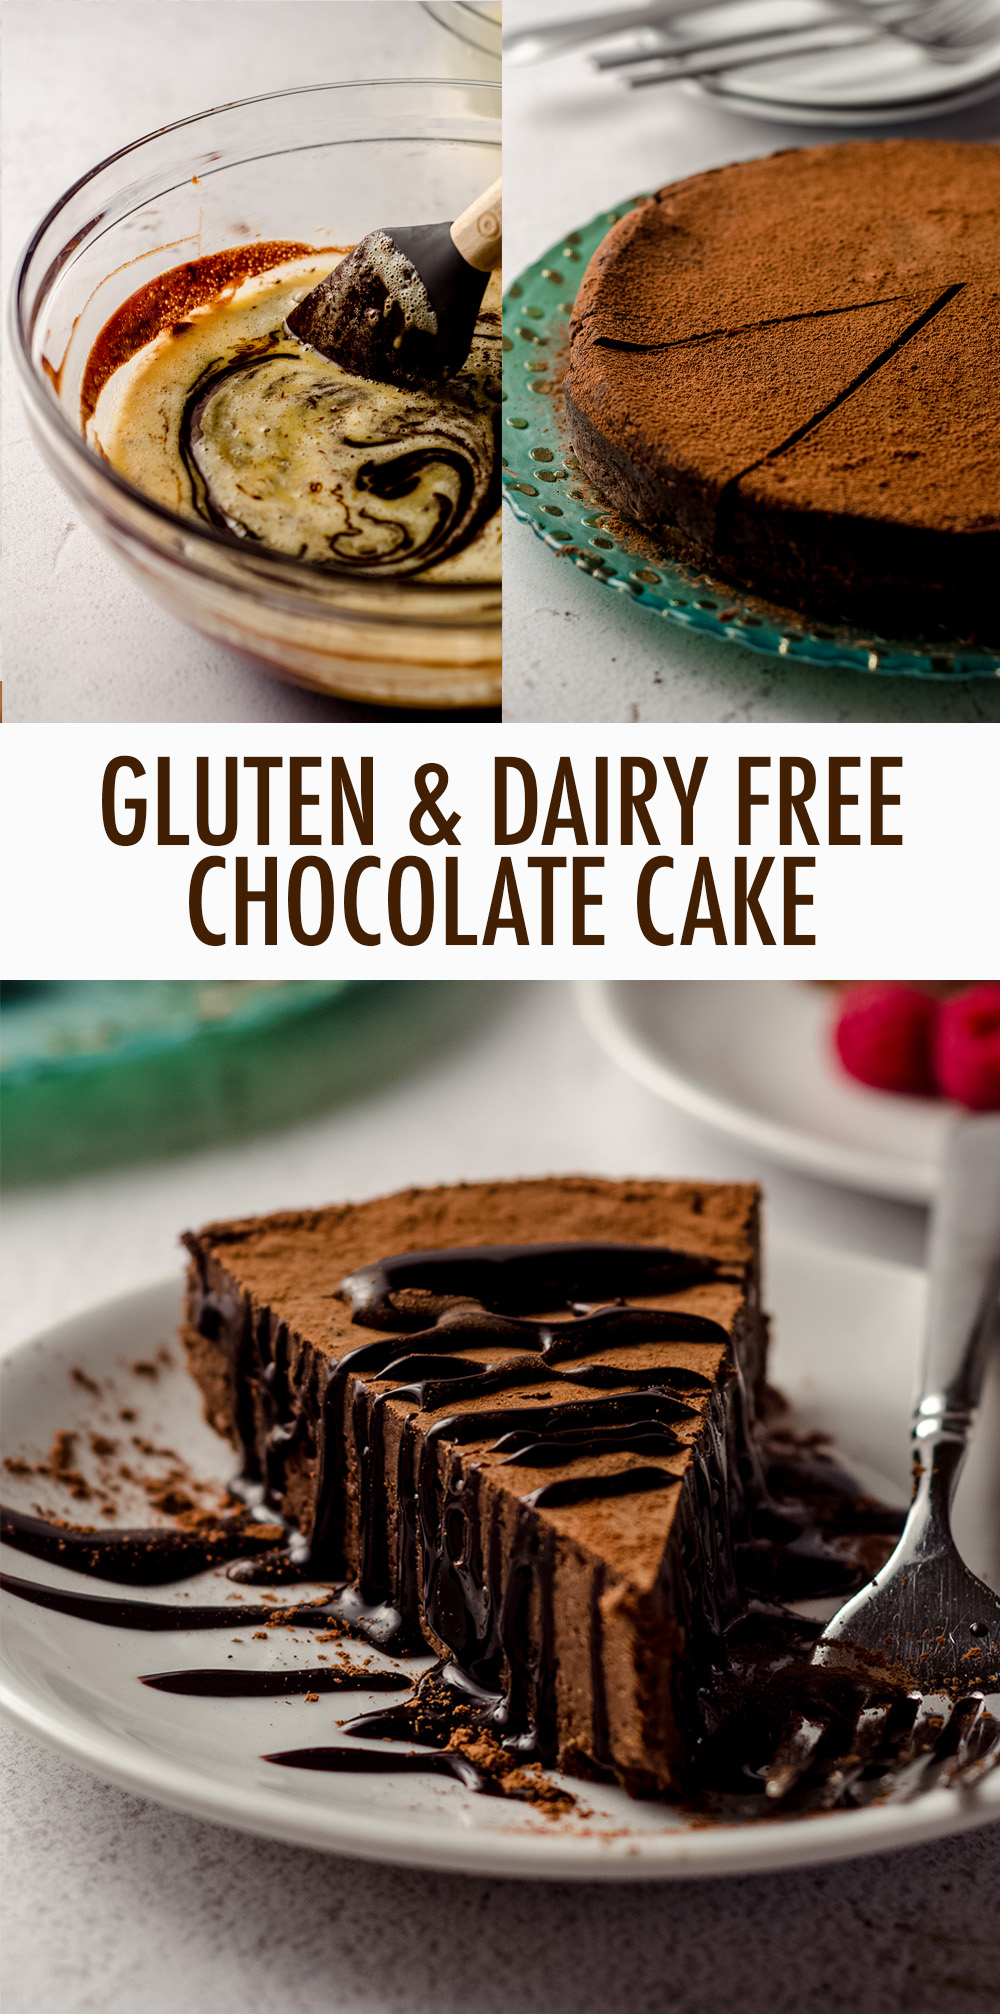 You only need 3 ingredients for this dense and fudgy gluten and dairy free chocolate cake. A perfectly blank canvas for any toppings or frosting you desire!